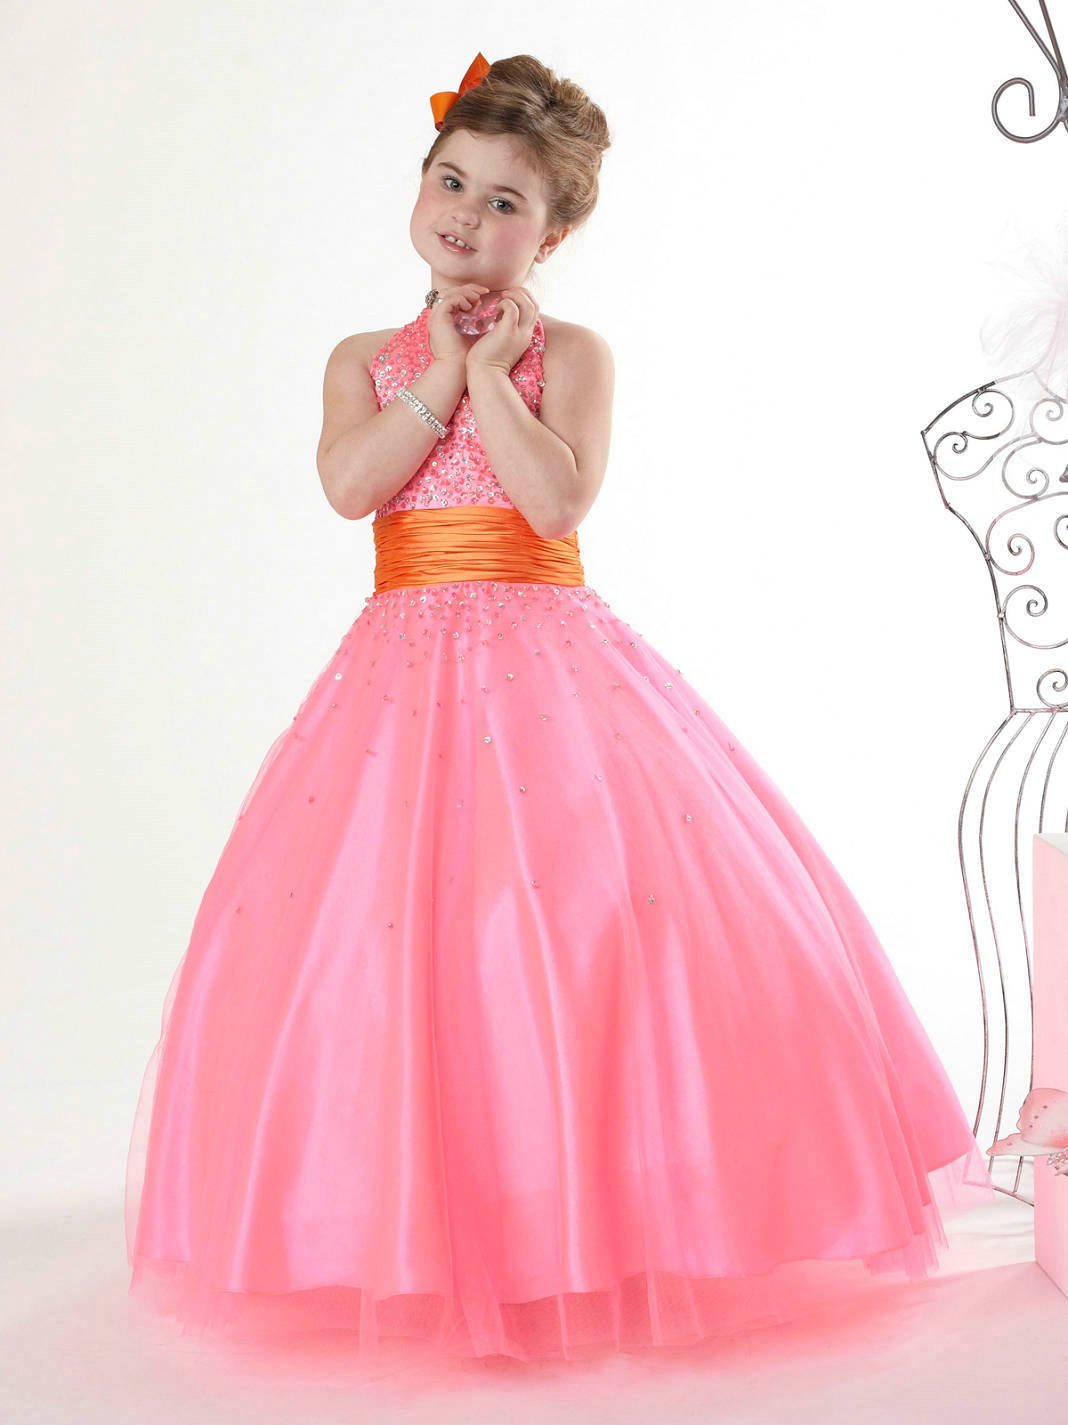 Gown segment may be a flower girl type dress or pageant dress